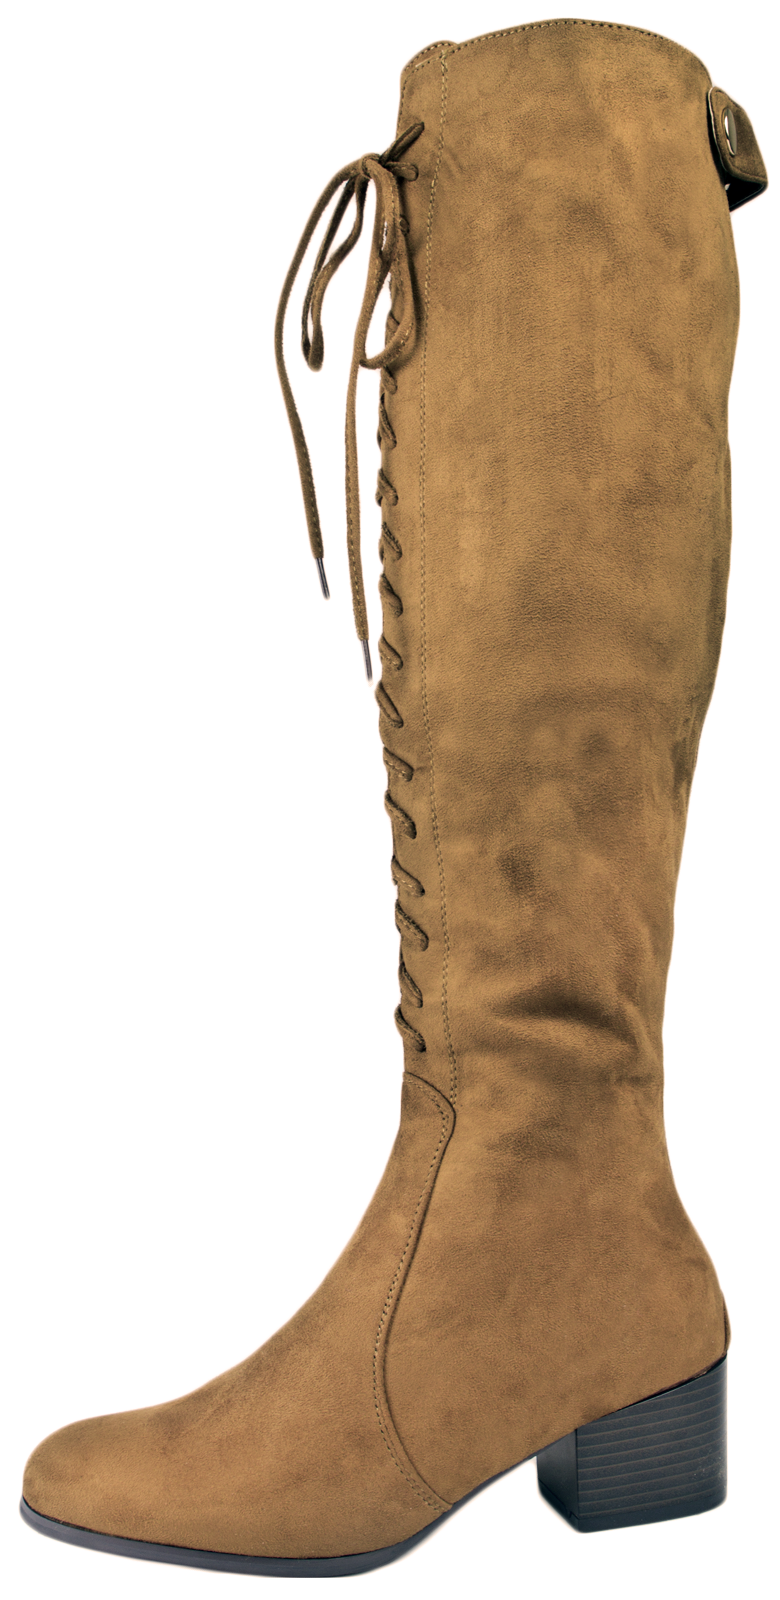 Elegant Emu Tenzing Womenu2019s Lace Up Ankle Boots In Chocolate Suede